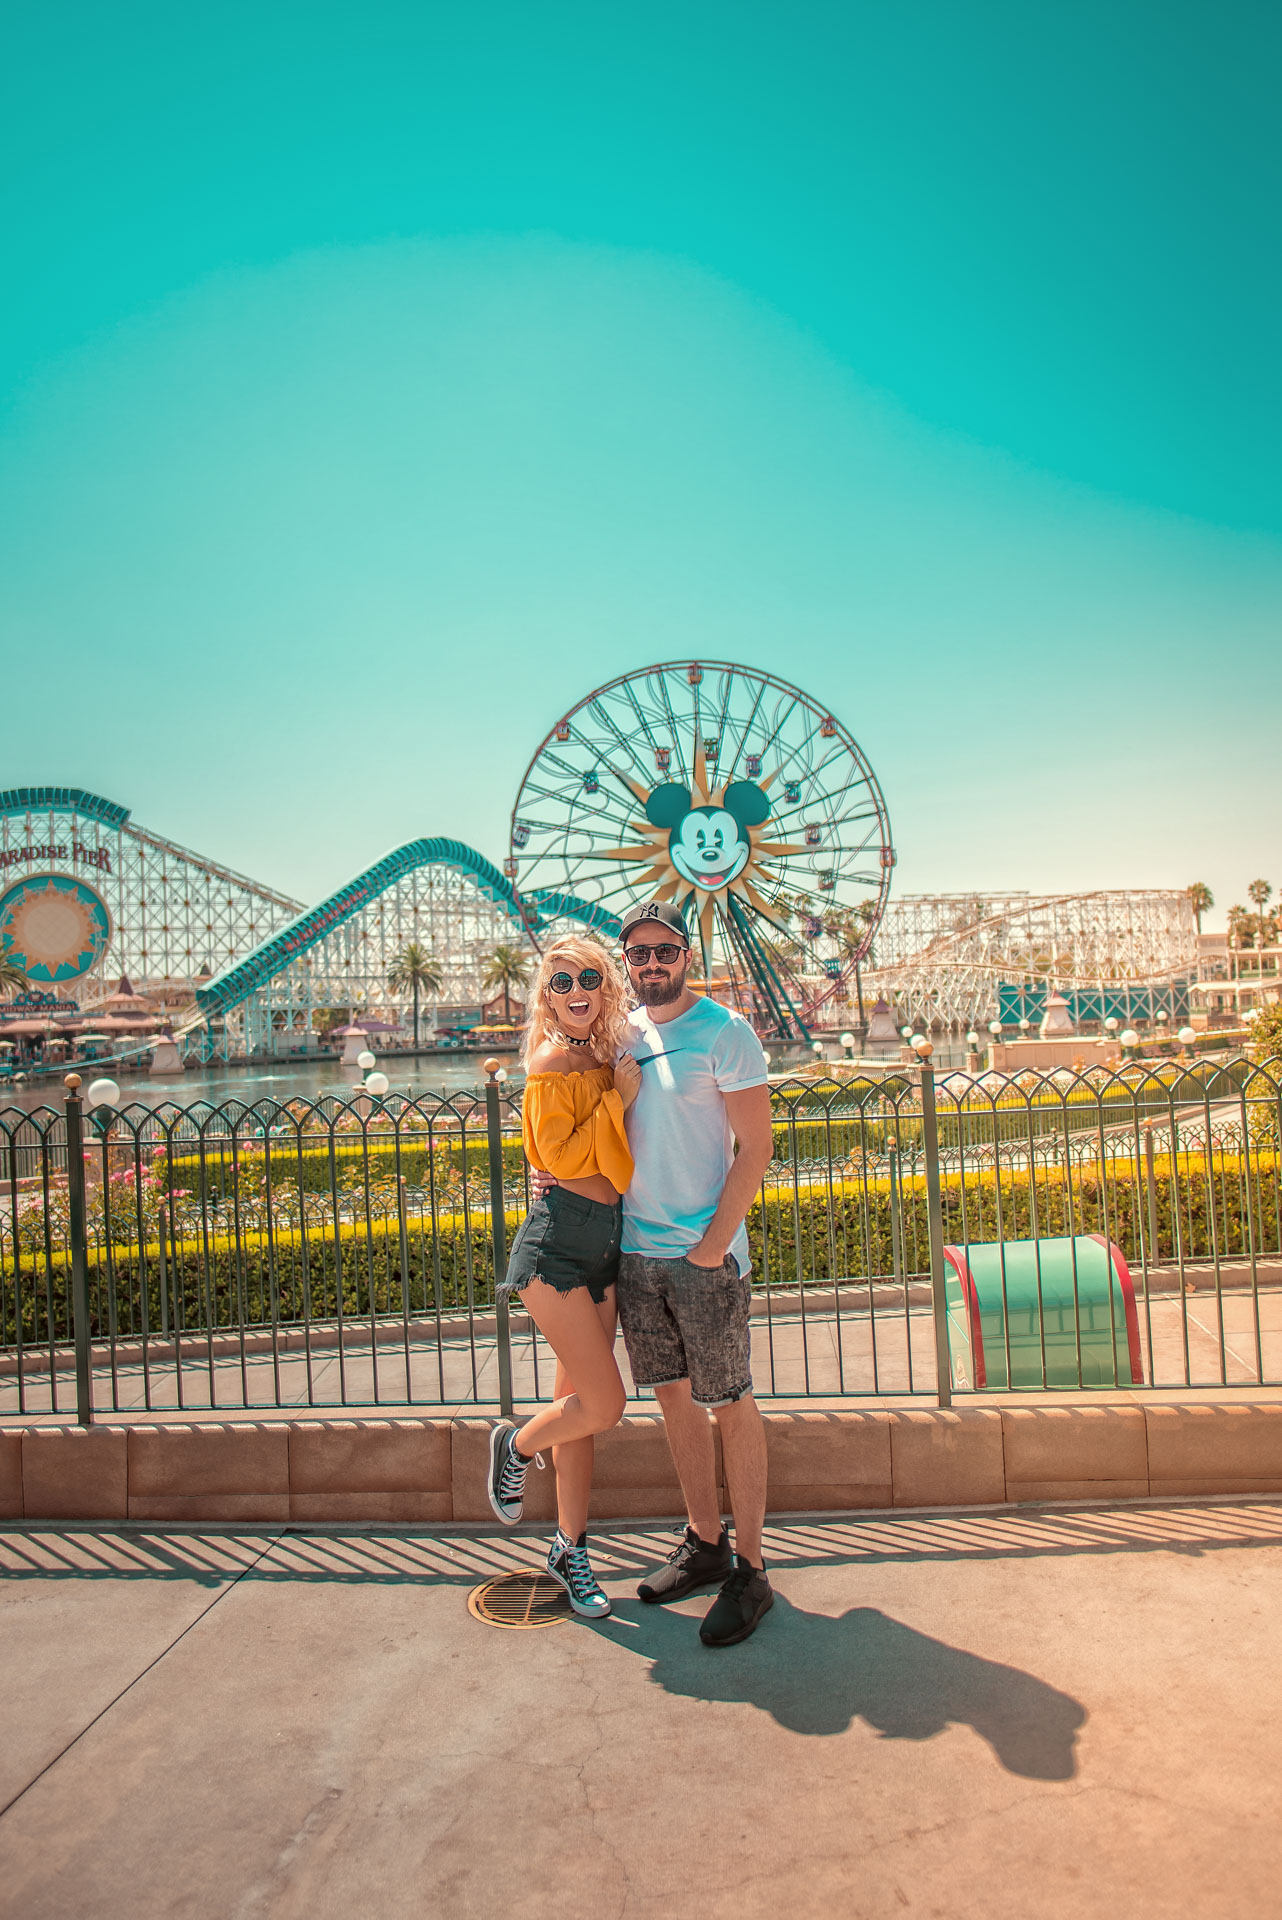 DISNEYLAND, happiest place on Earth!